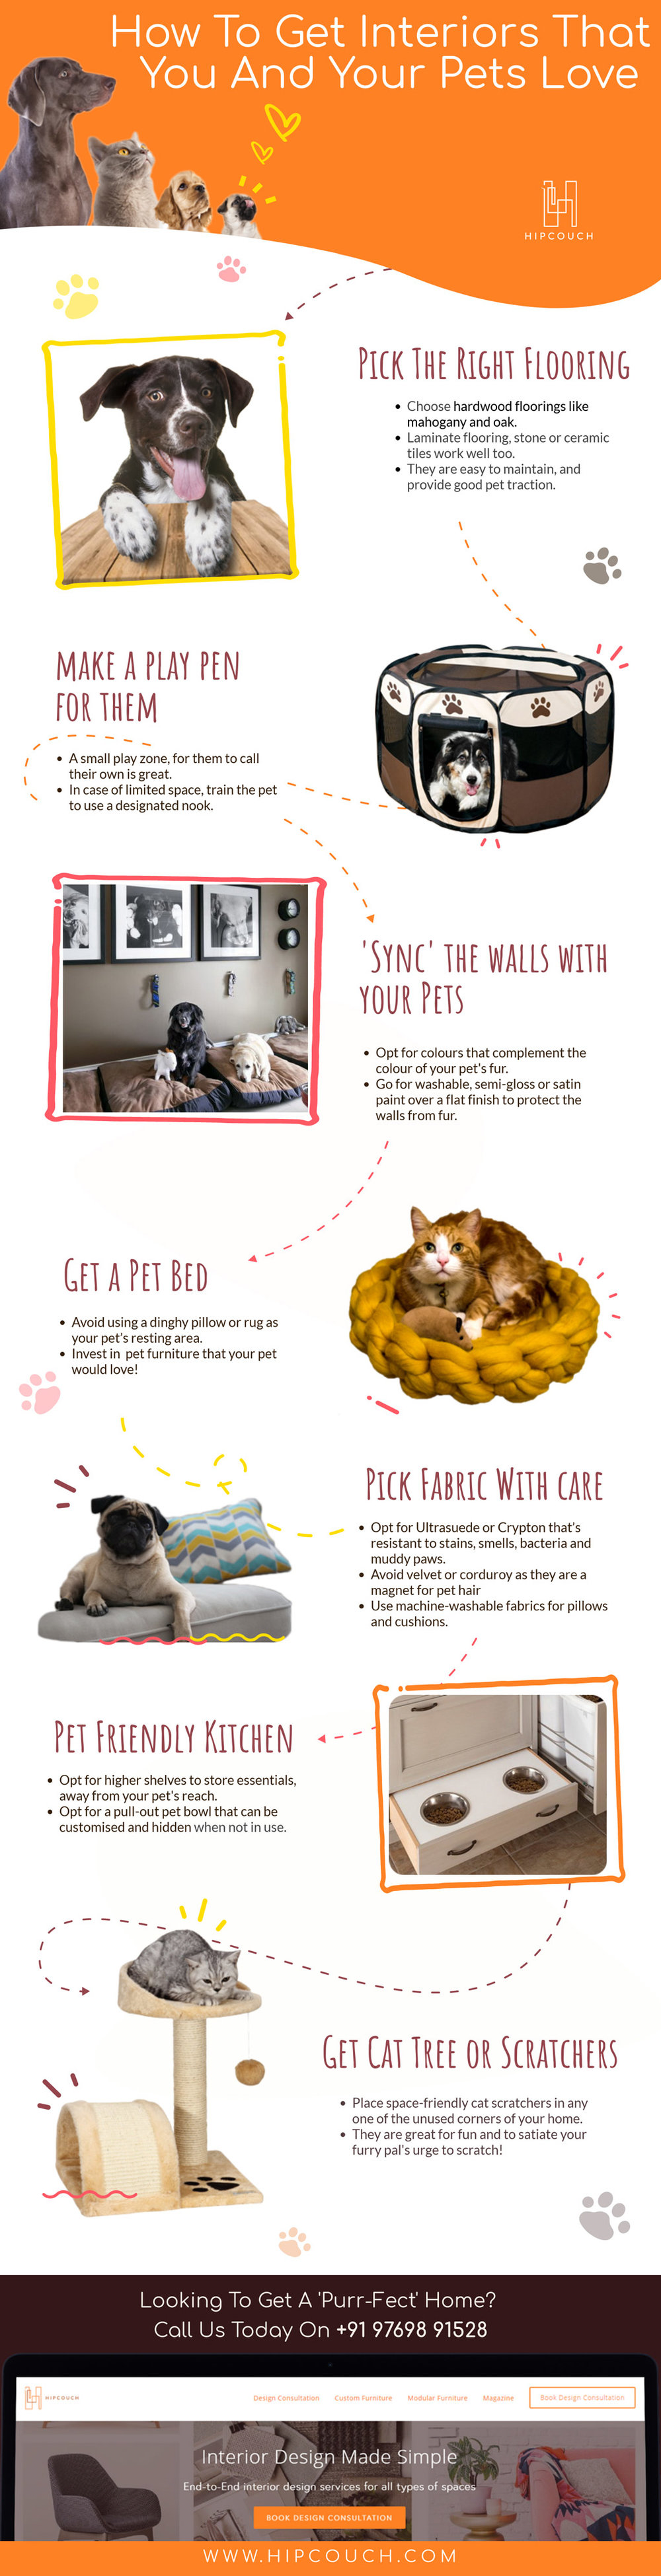 interiors-designs-for-pet-lovers.jpg